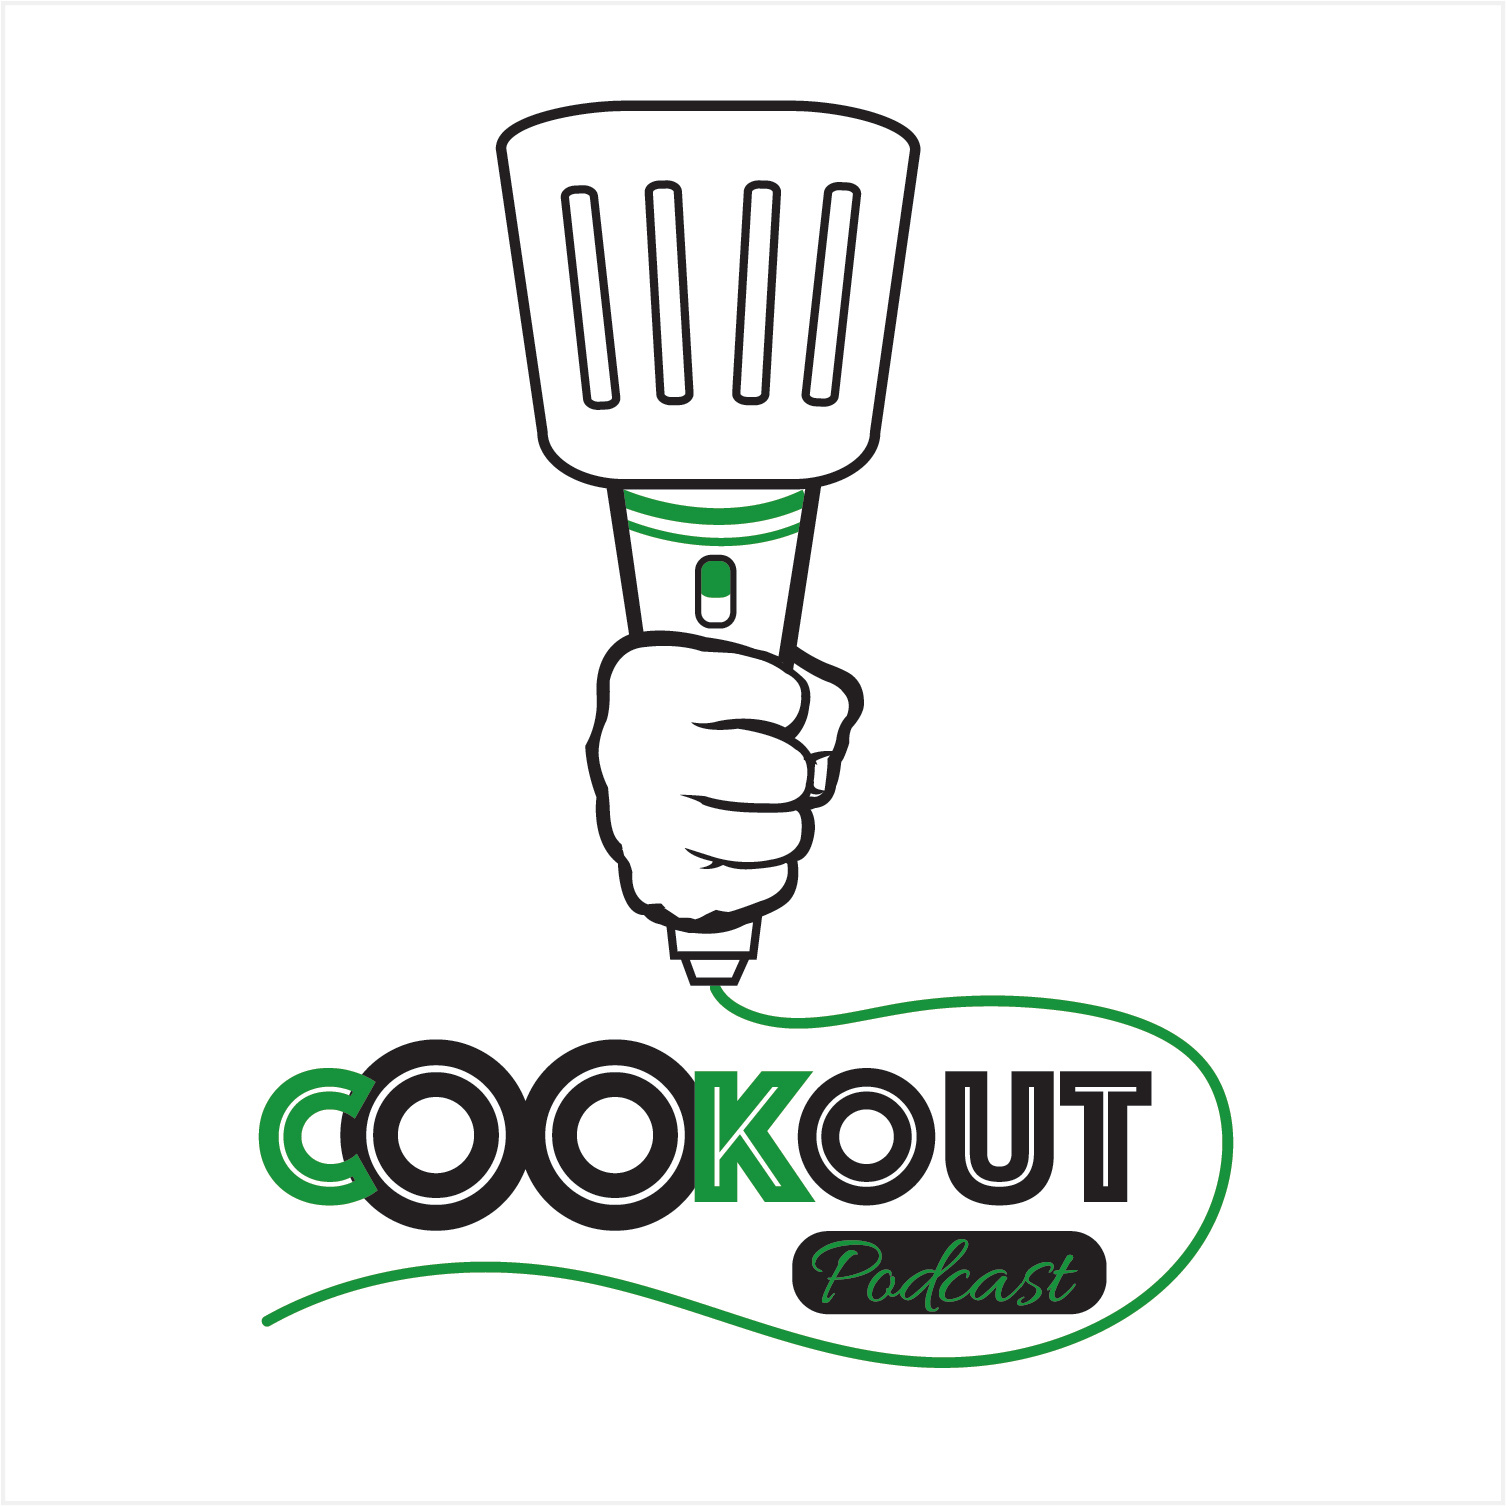 Cookout Podcast